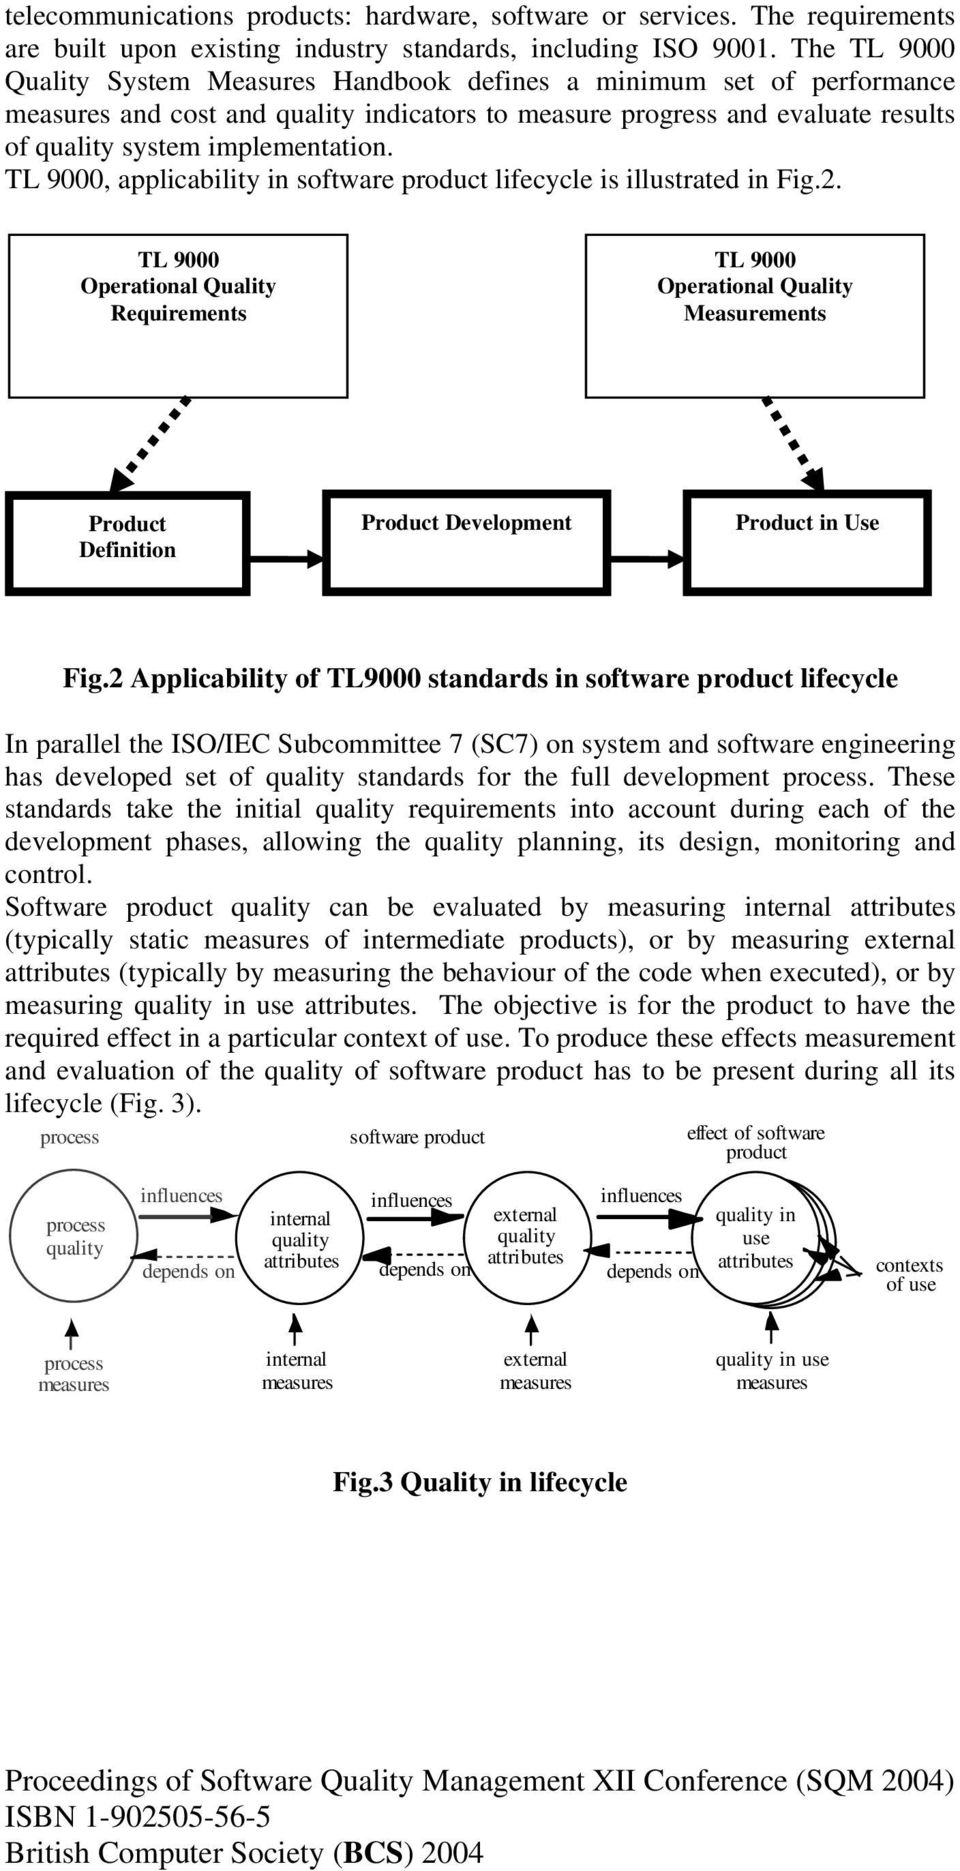 TL 9000, applicability in software product lifecycle is illustrated in Fig.2.